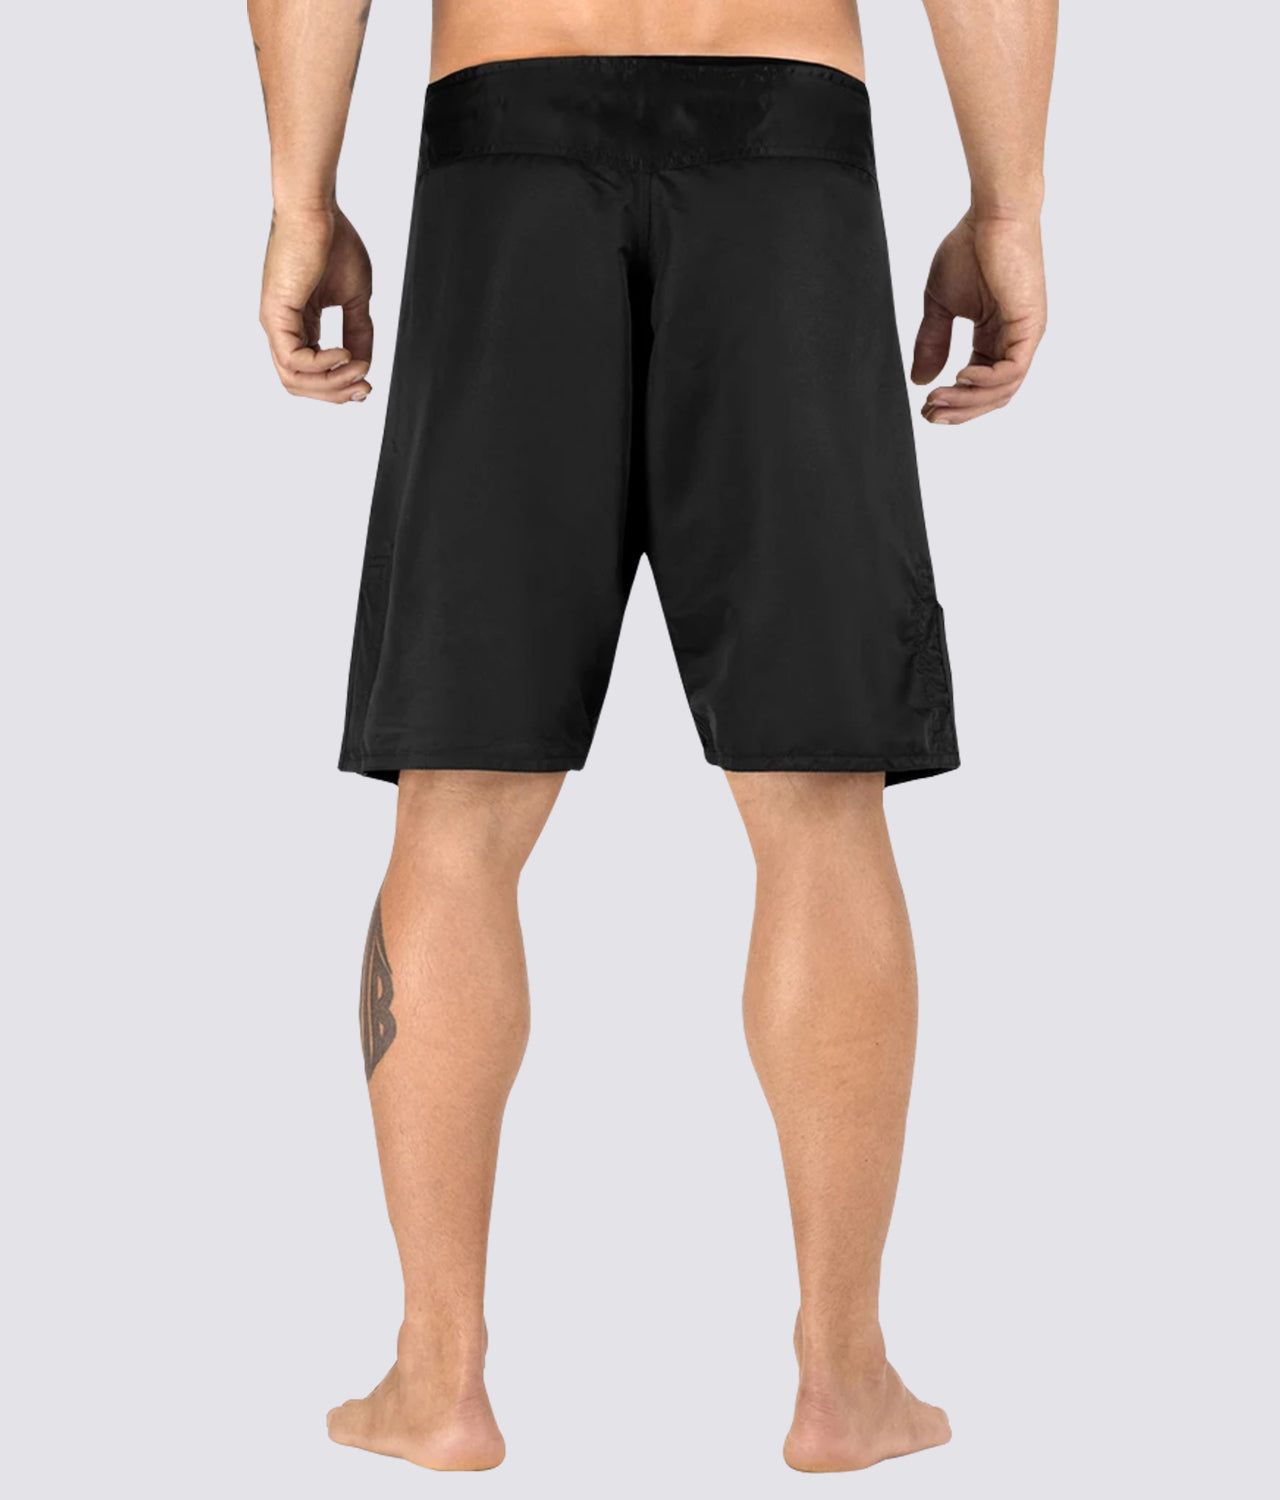 Elite Sports Black Jack Series Black/Black MMA Shorts